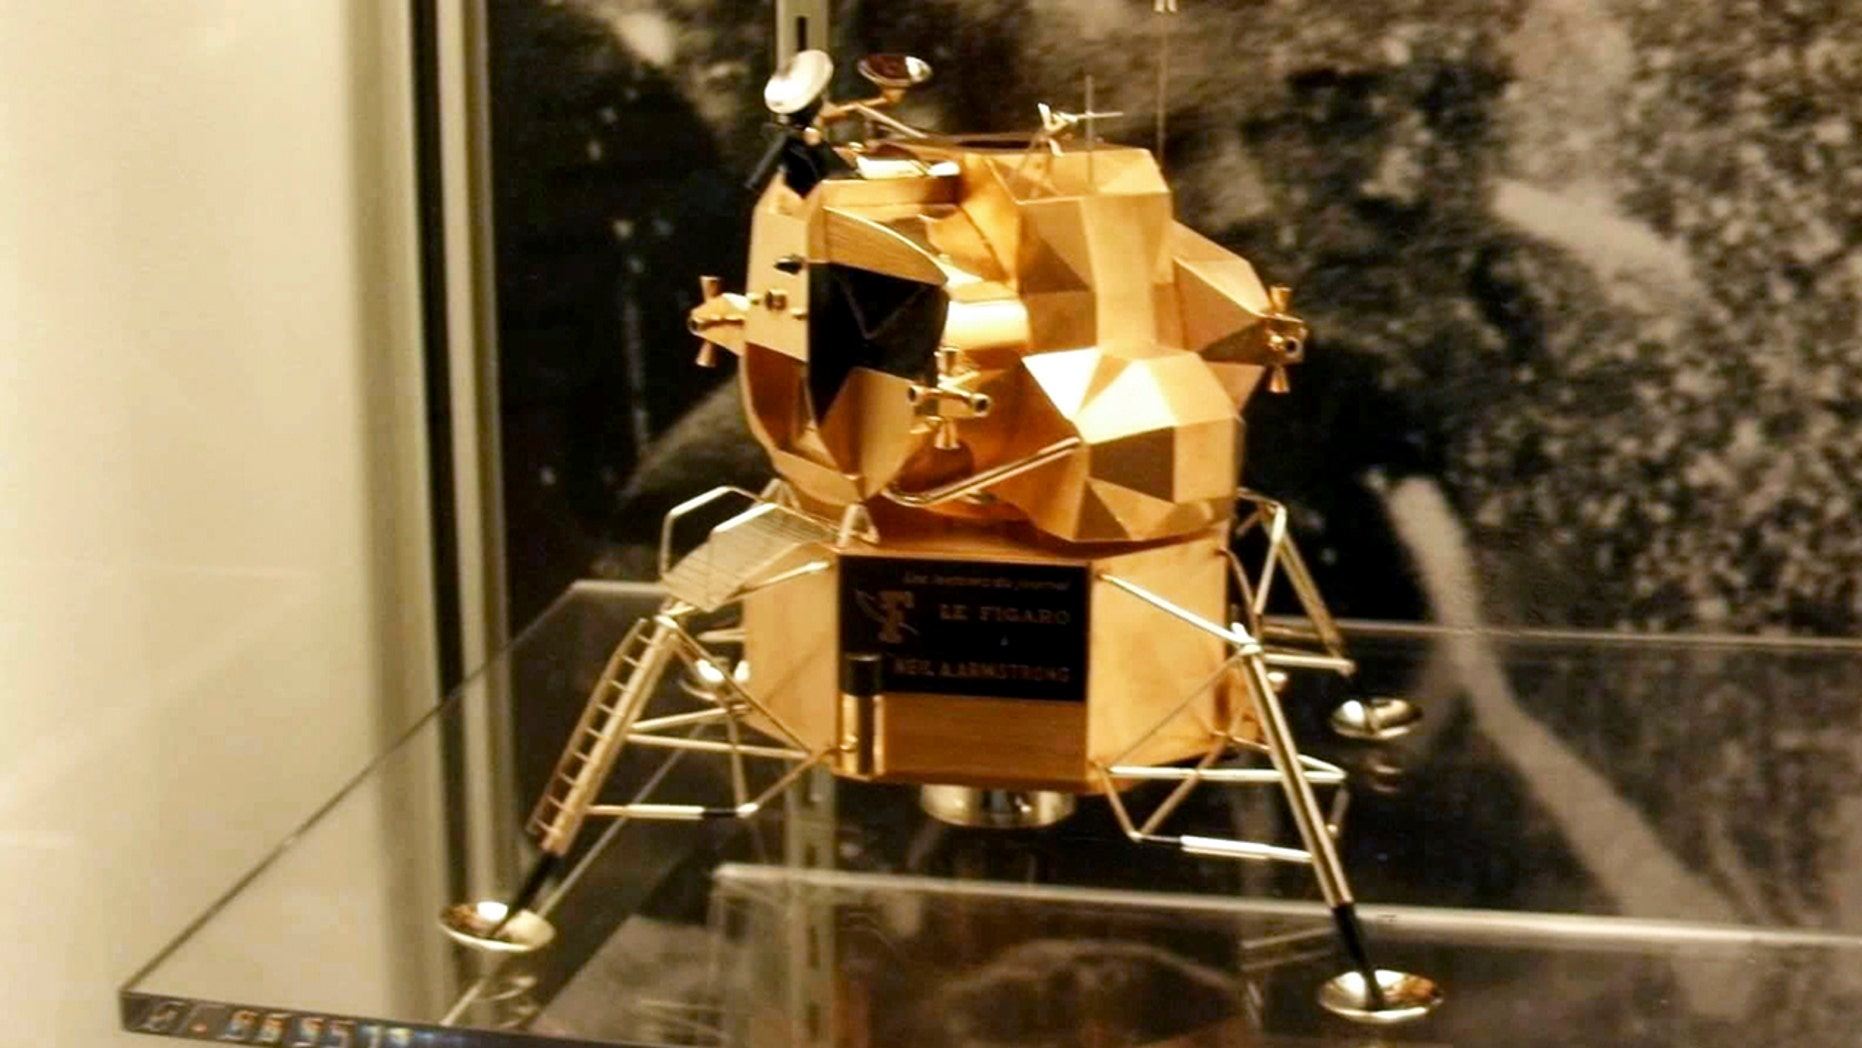 The lunar module replica at Armstrong Air and Space Museum was stolen Friday night